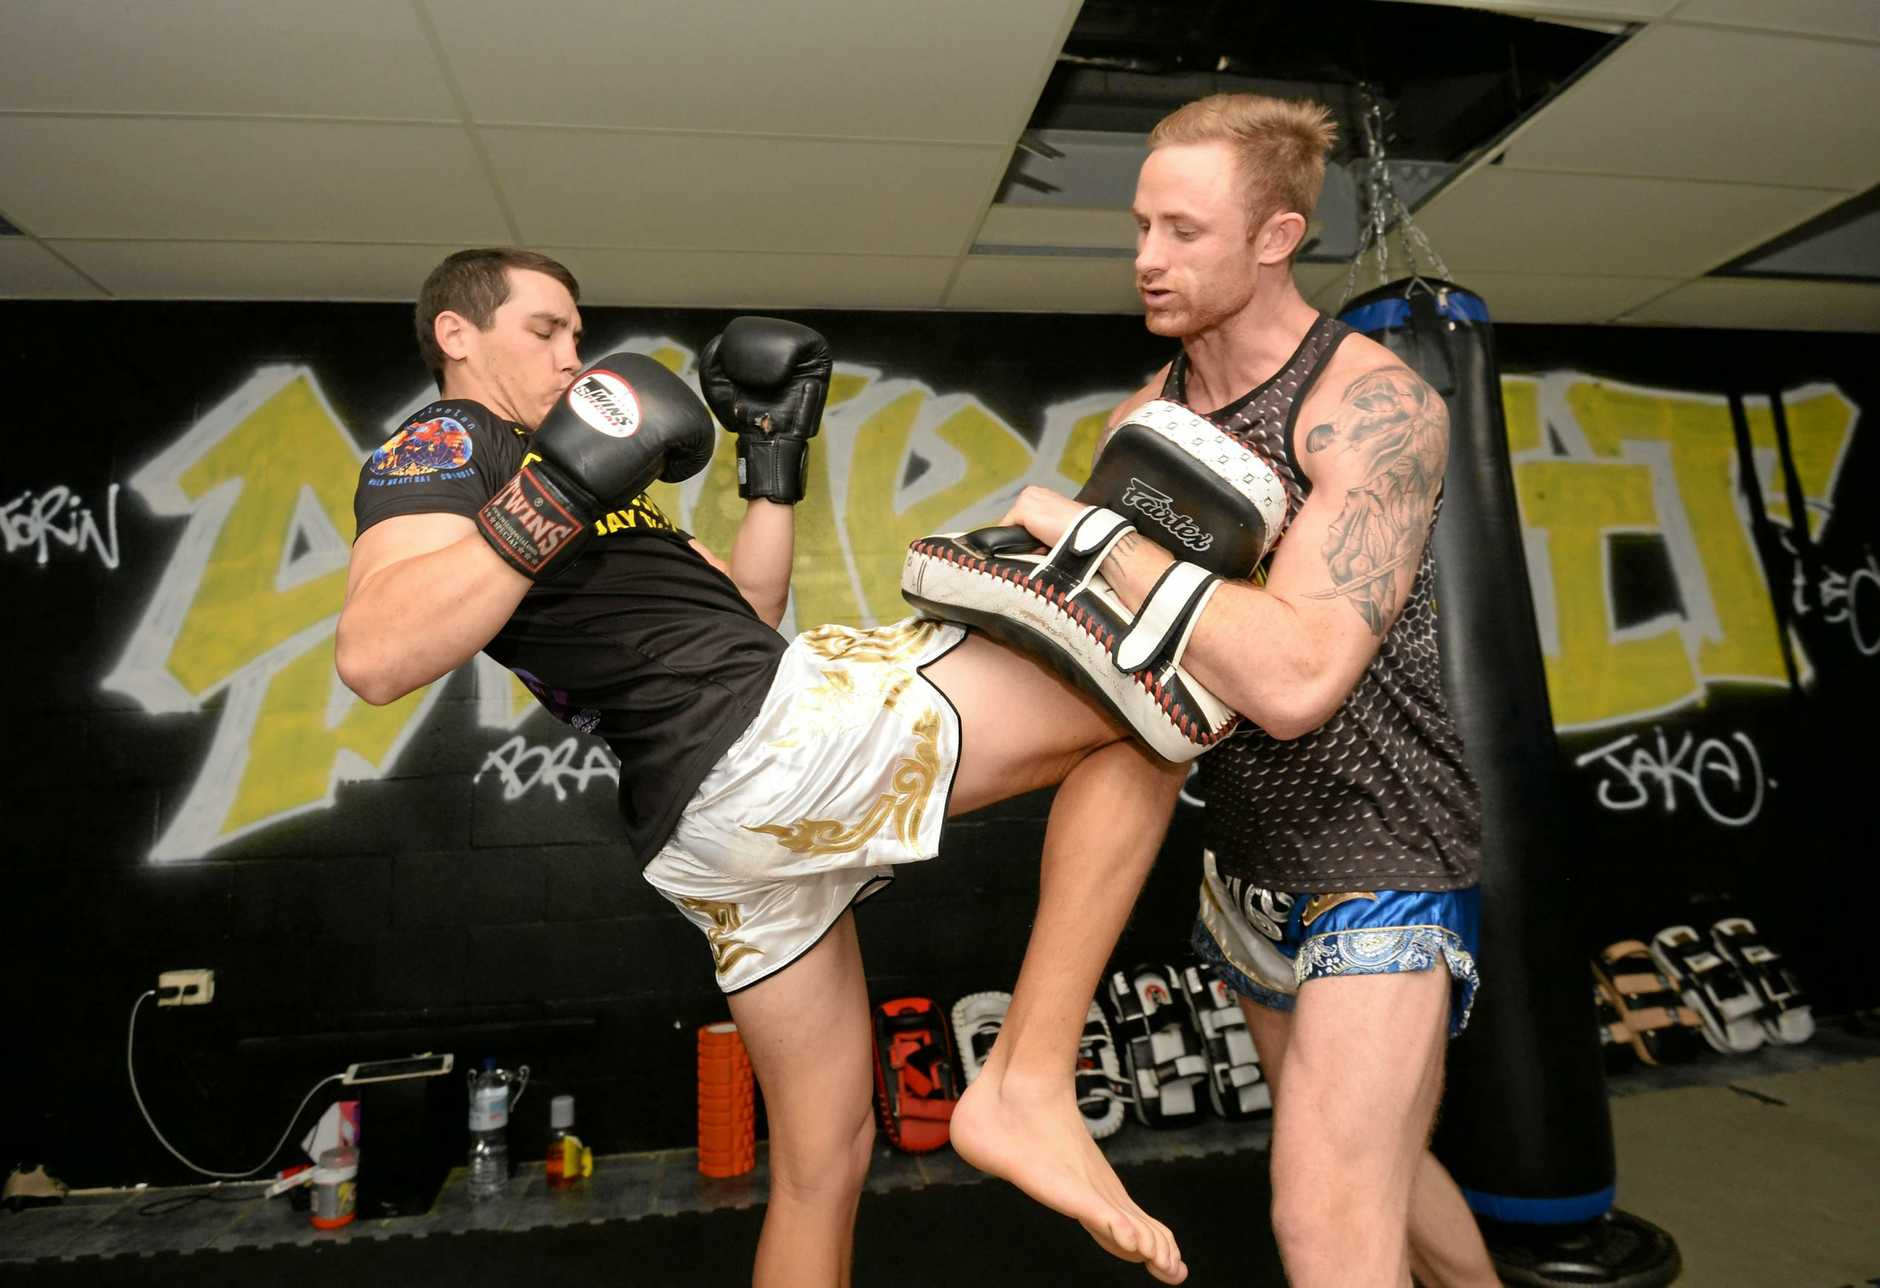 Rocky Rumble 18 fighters Luke Ruddick and Torin O'Brien training at The Snake Pit.